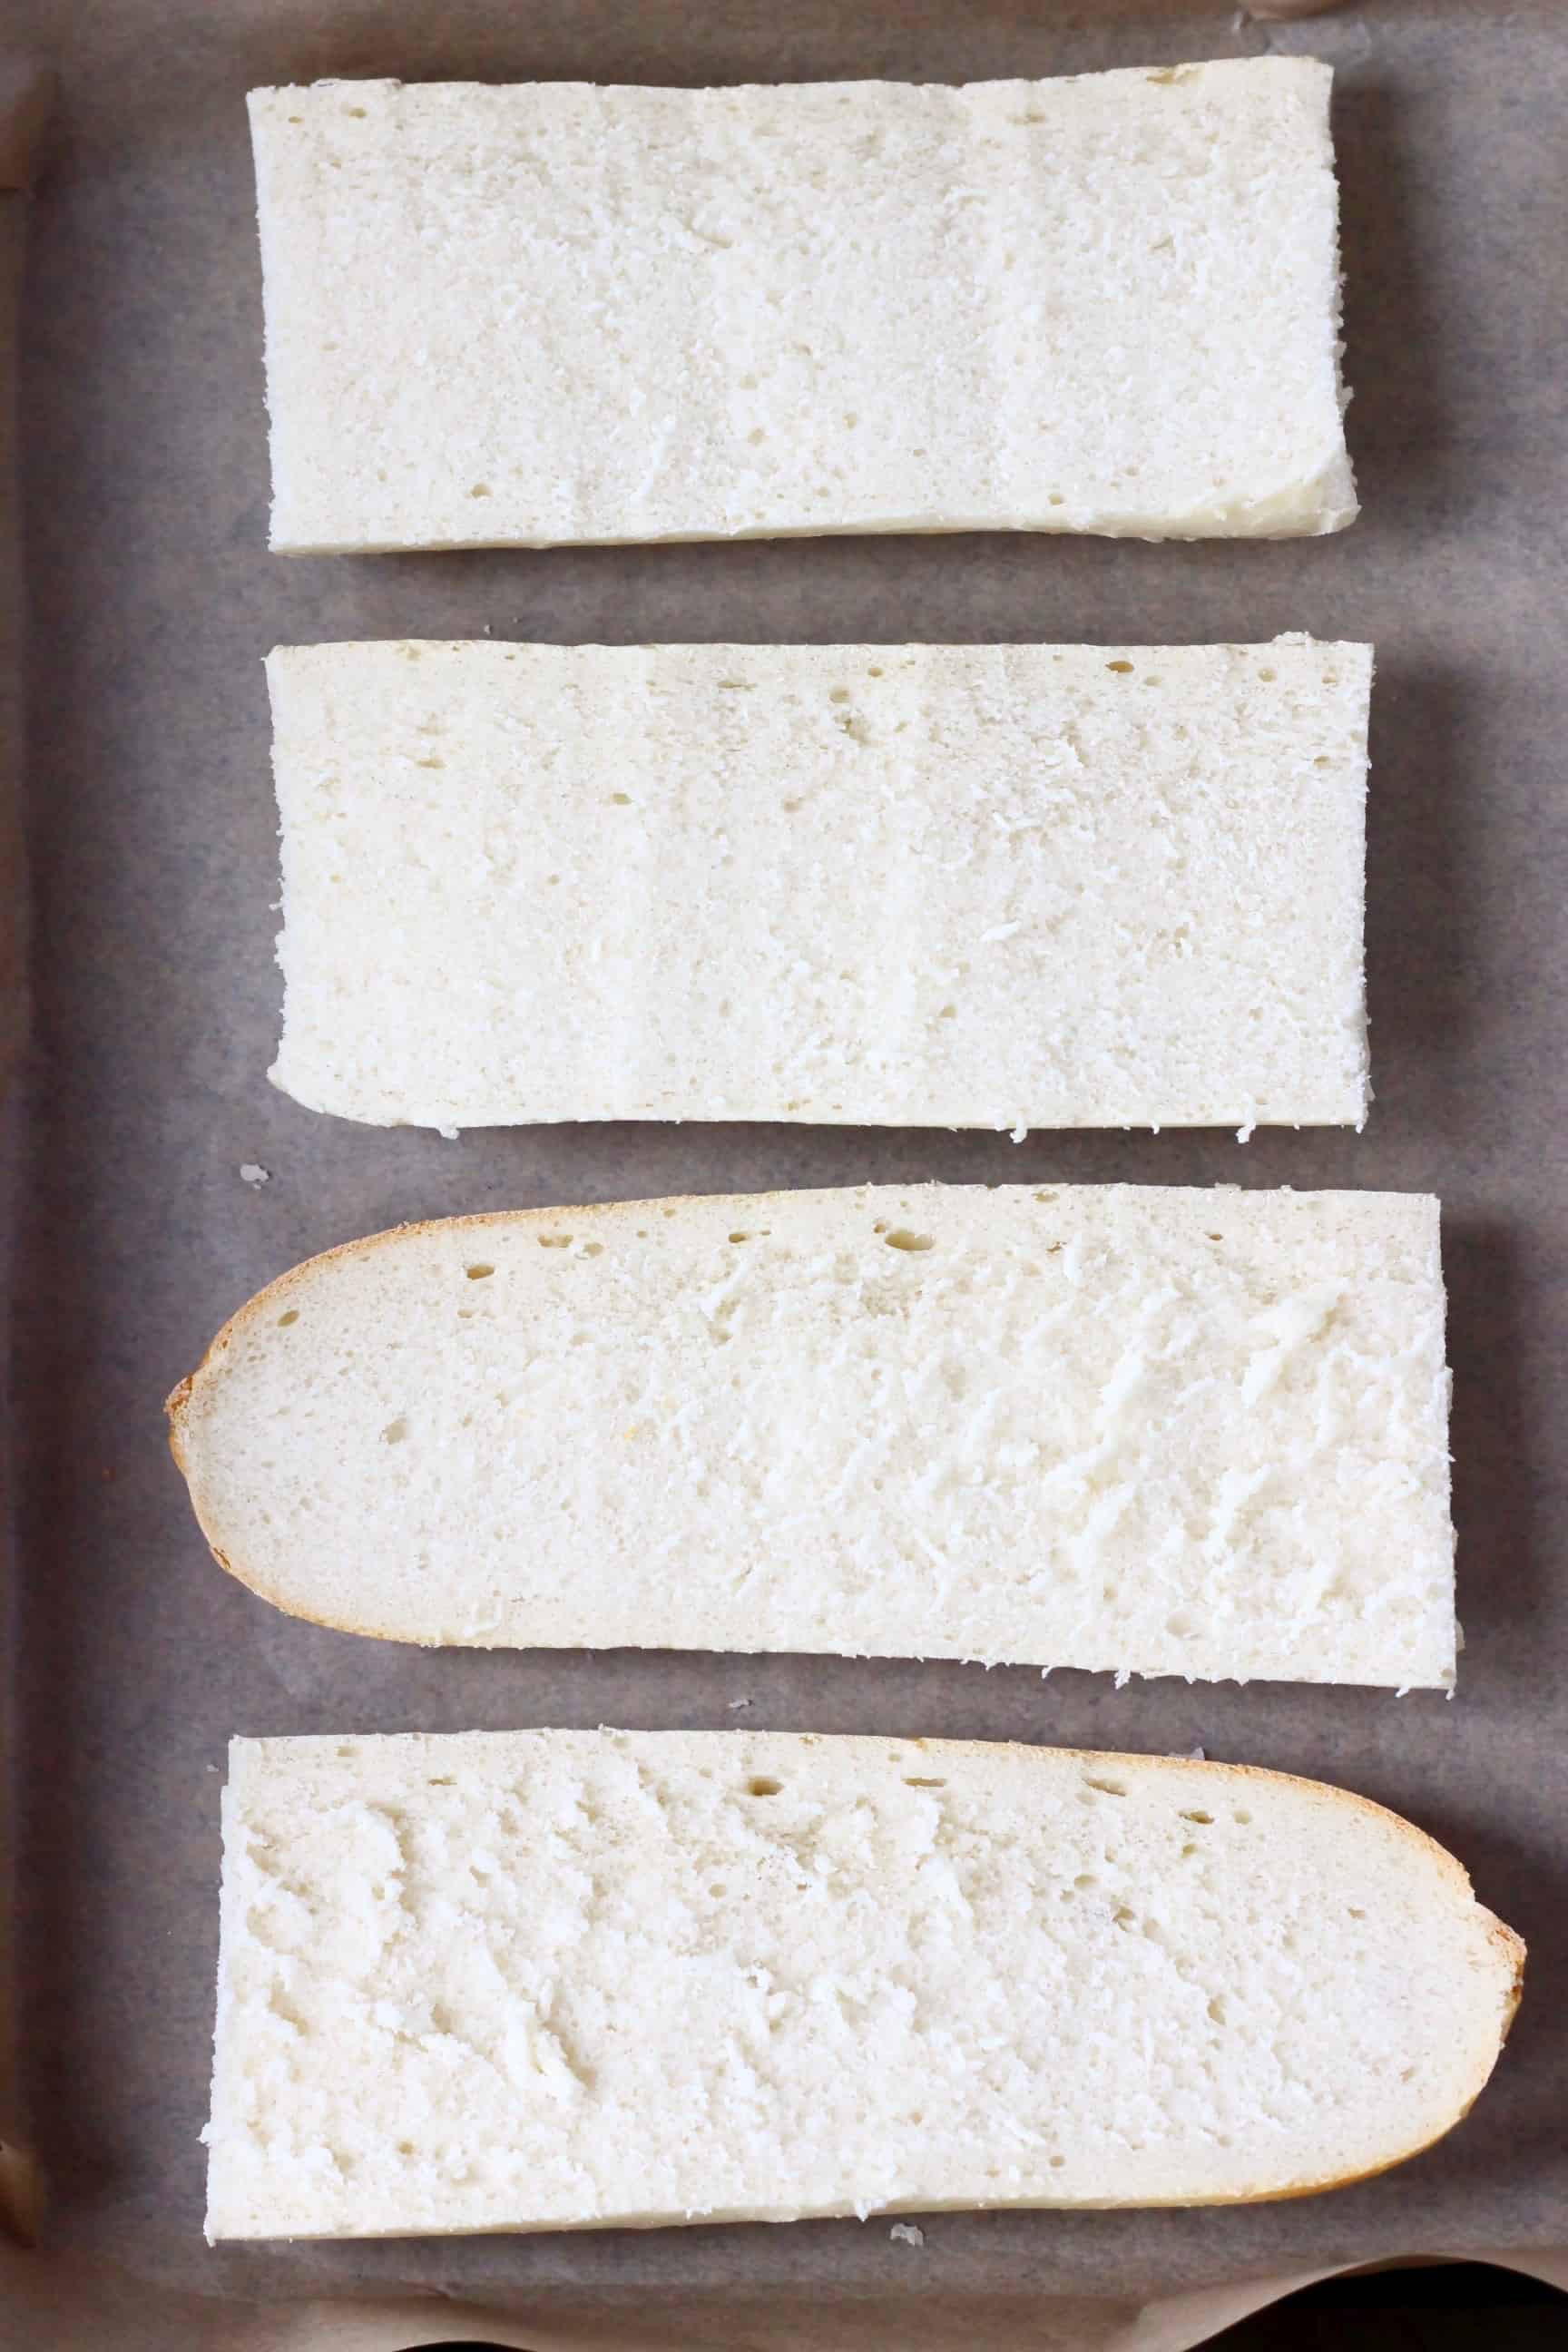 Four pieces of sliced white baguette on a sheet of baking paper